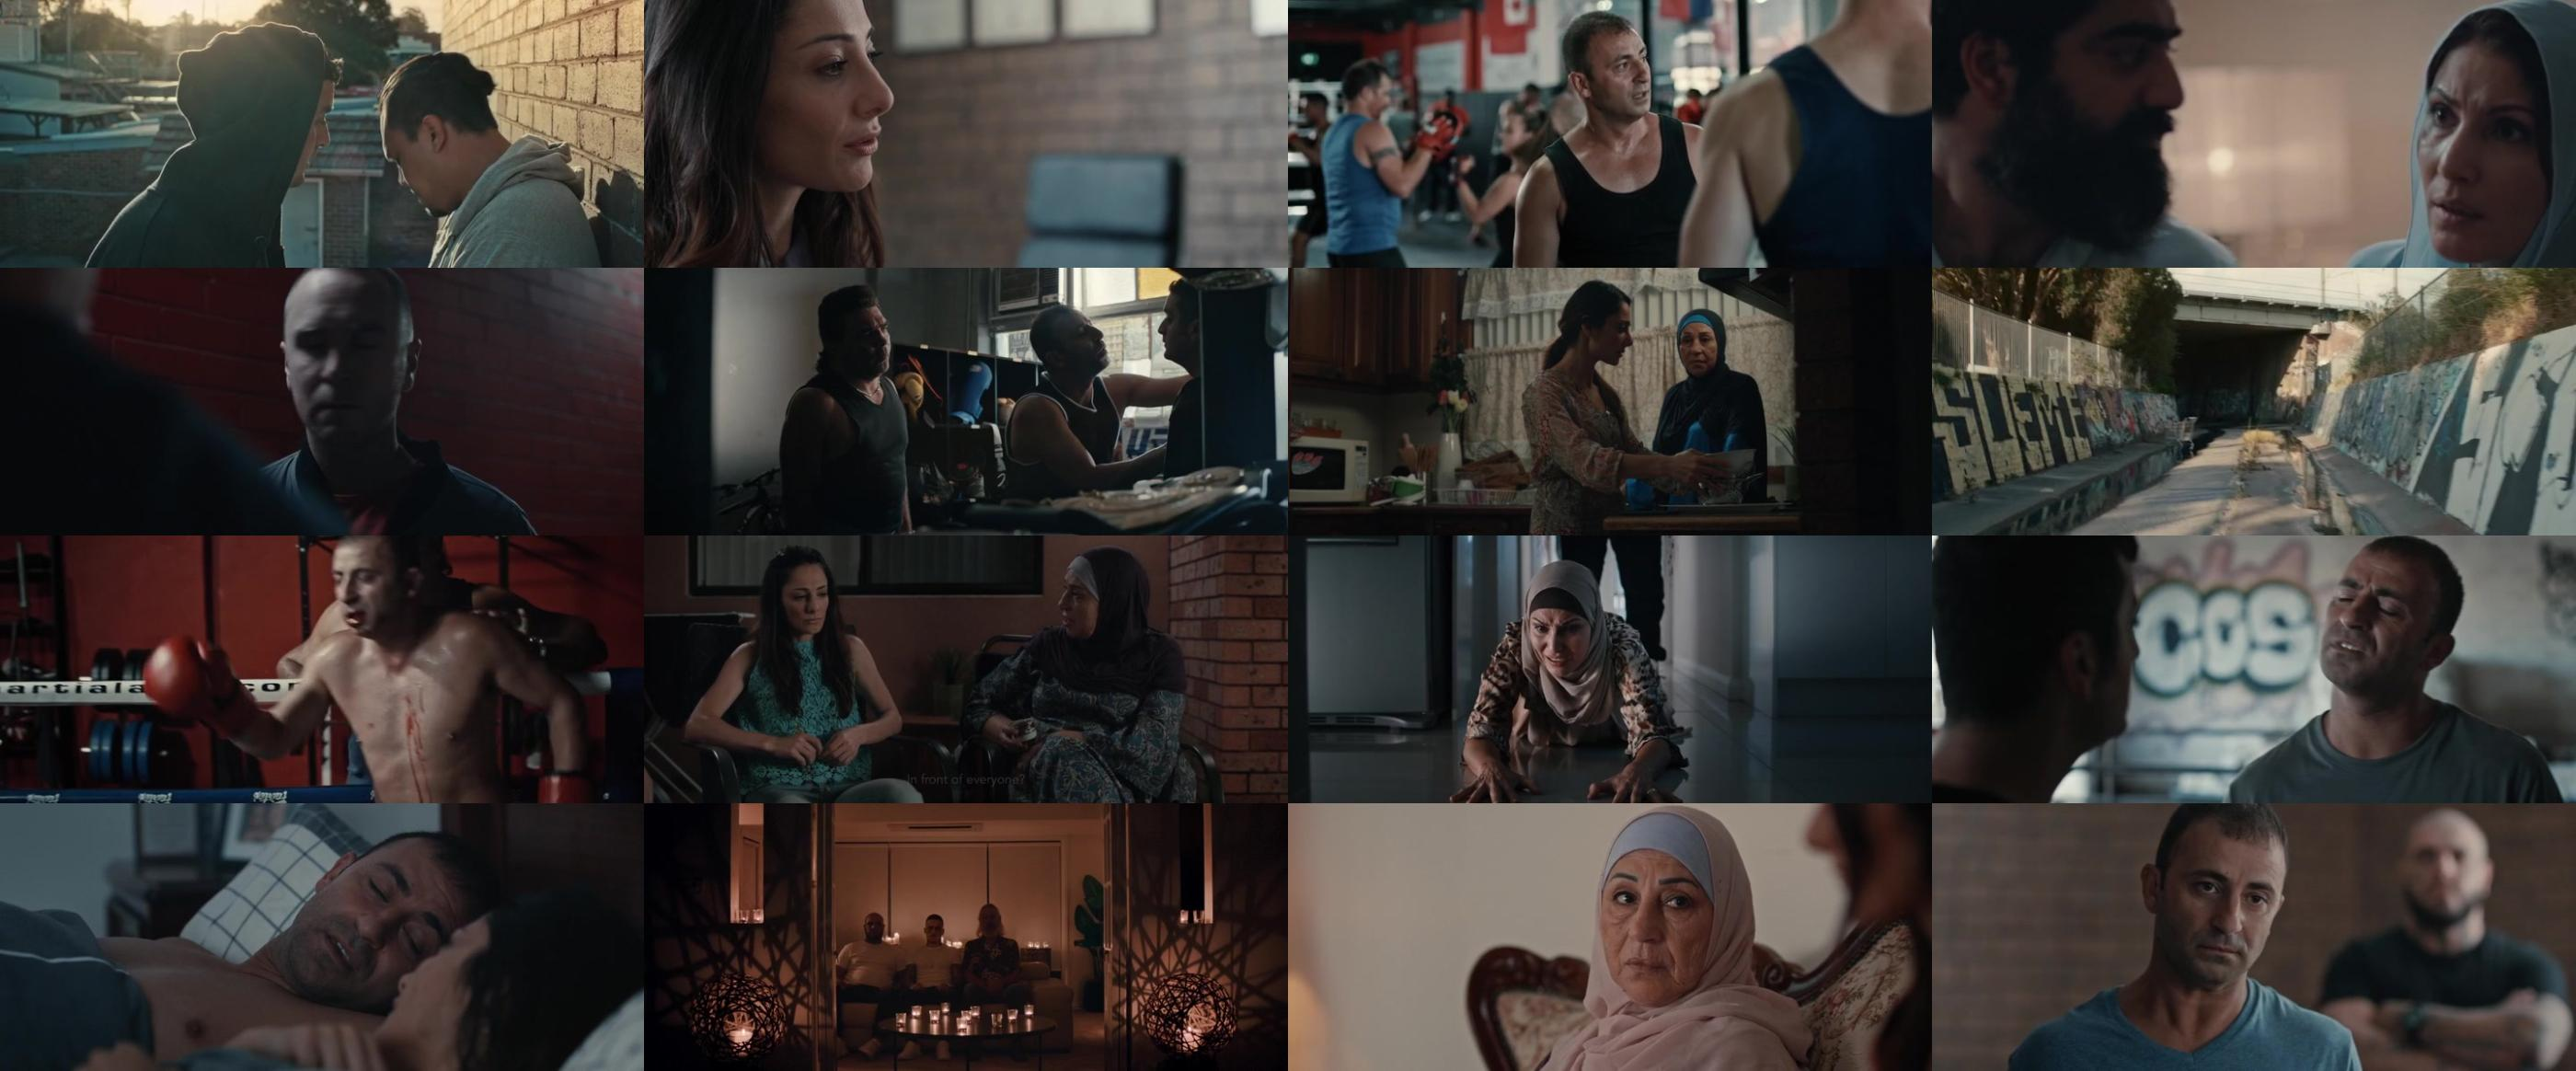 The Combination Redemption 2019 HDRip XviD AC3 EVO